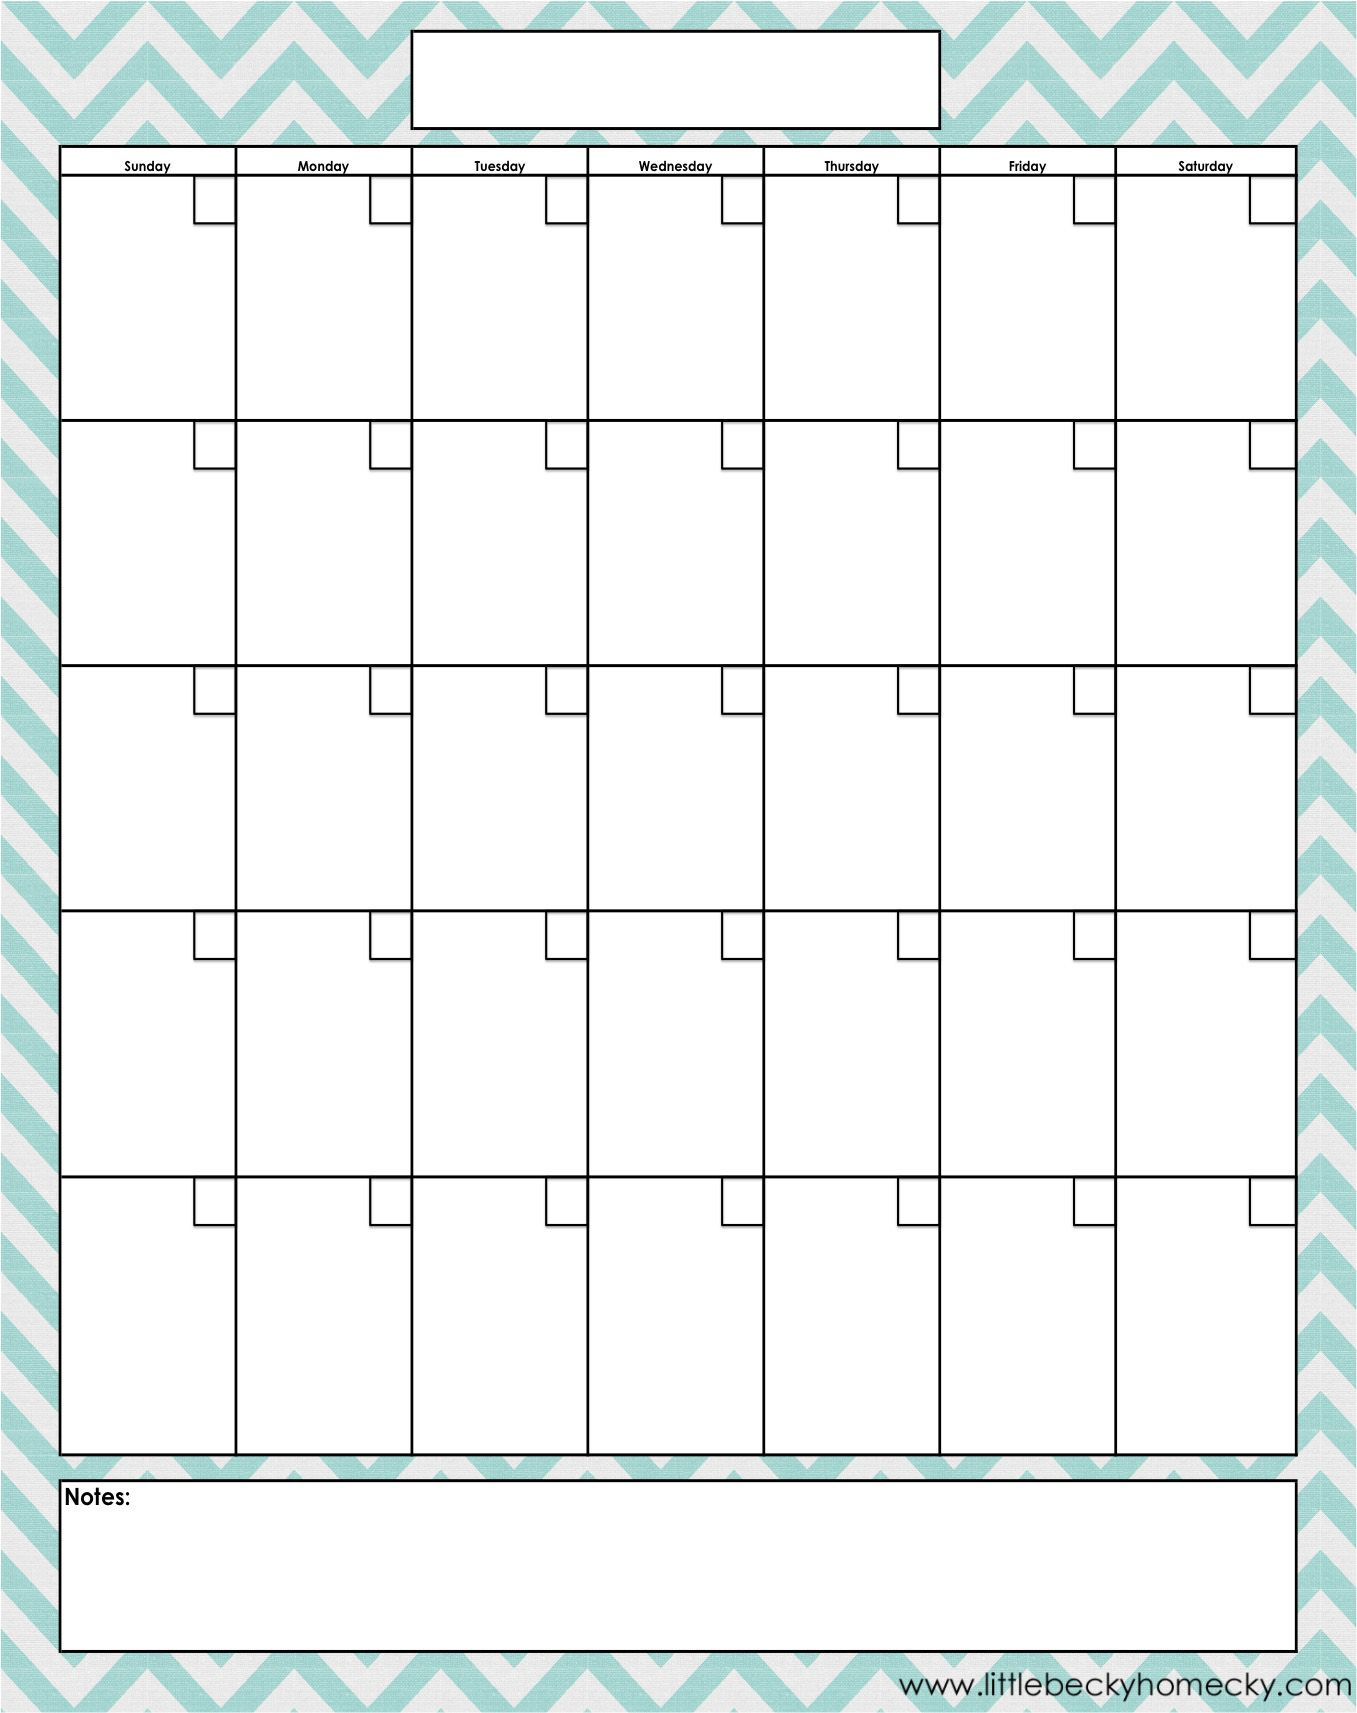 Free Printable Calendar – Printable Monthly Calendars